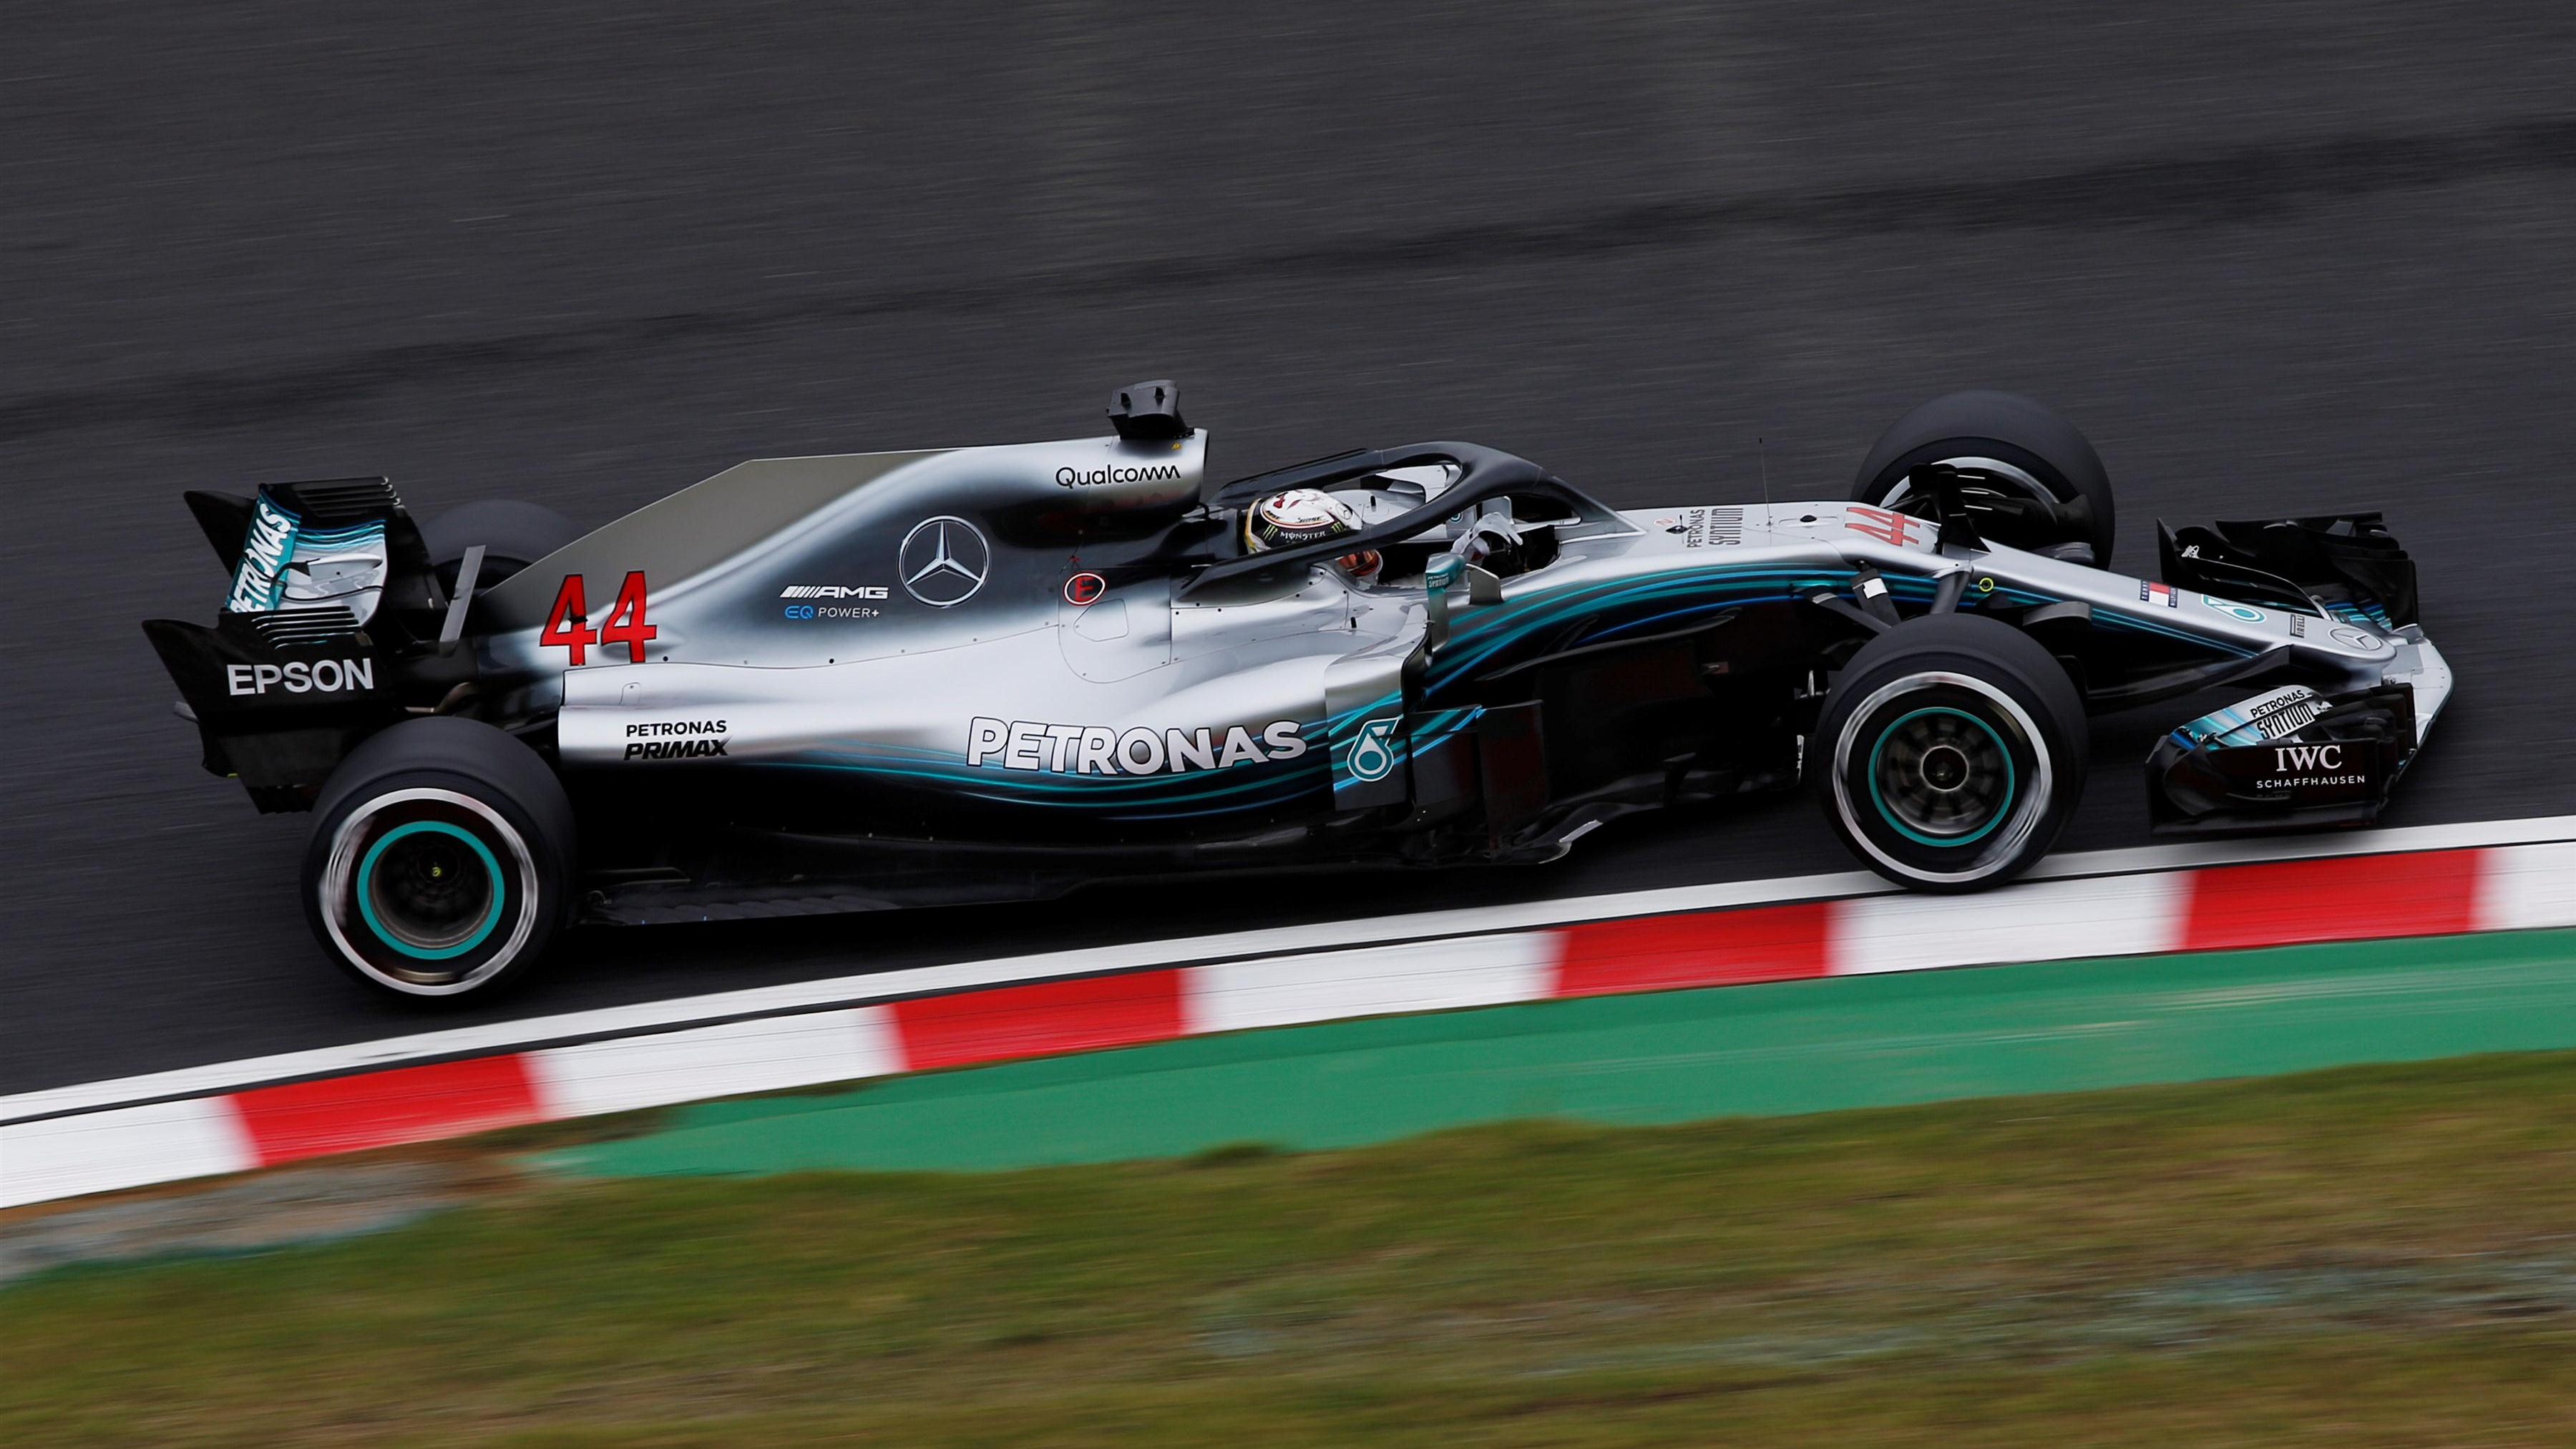 fp1 hamilton leads mercedes one two in japan. Black Bedroom Furniture Sets. Home Design Ideas